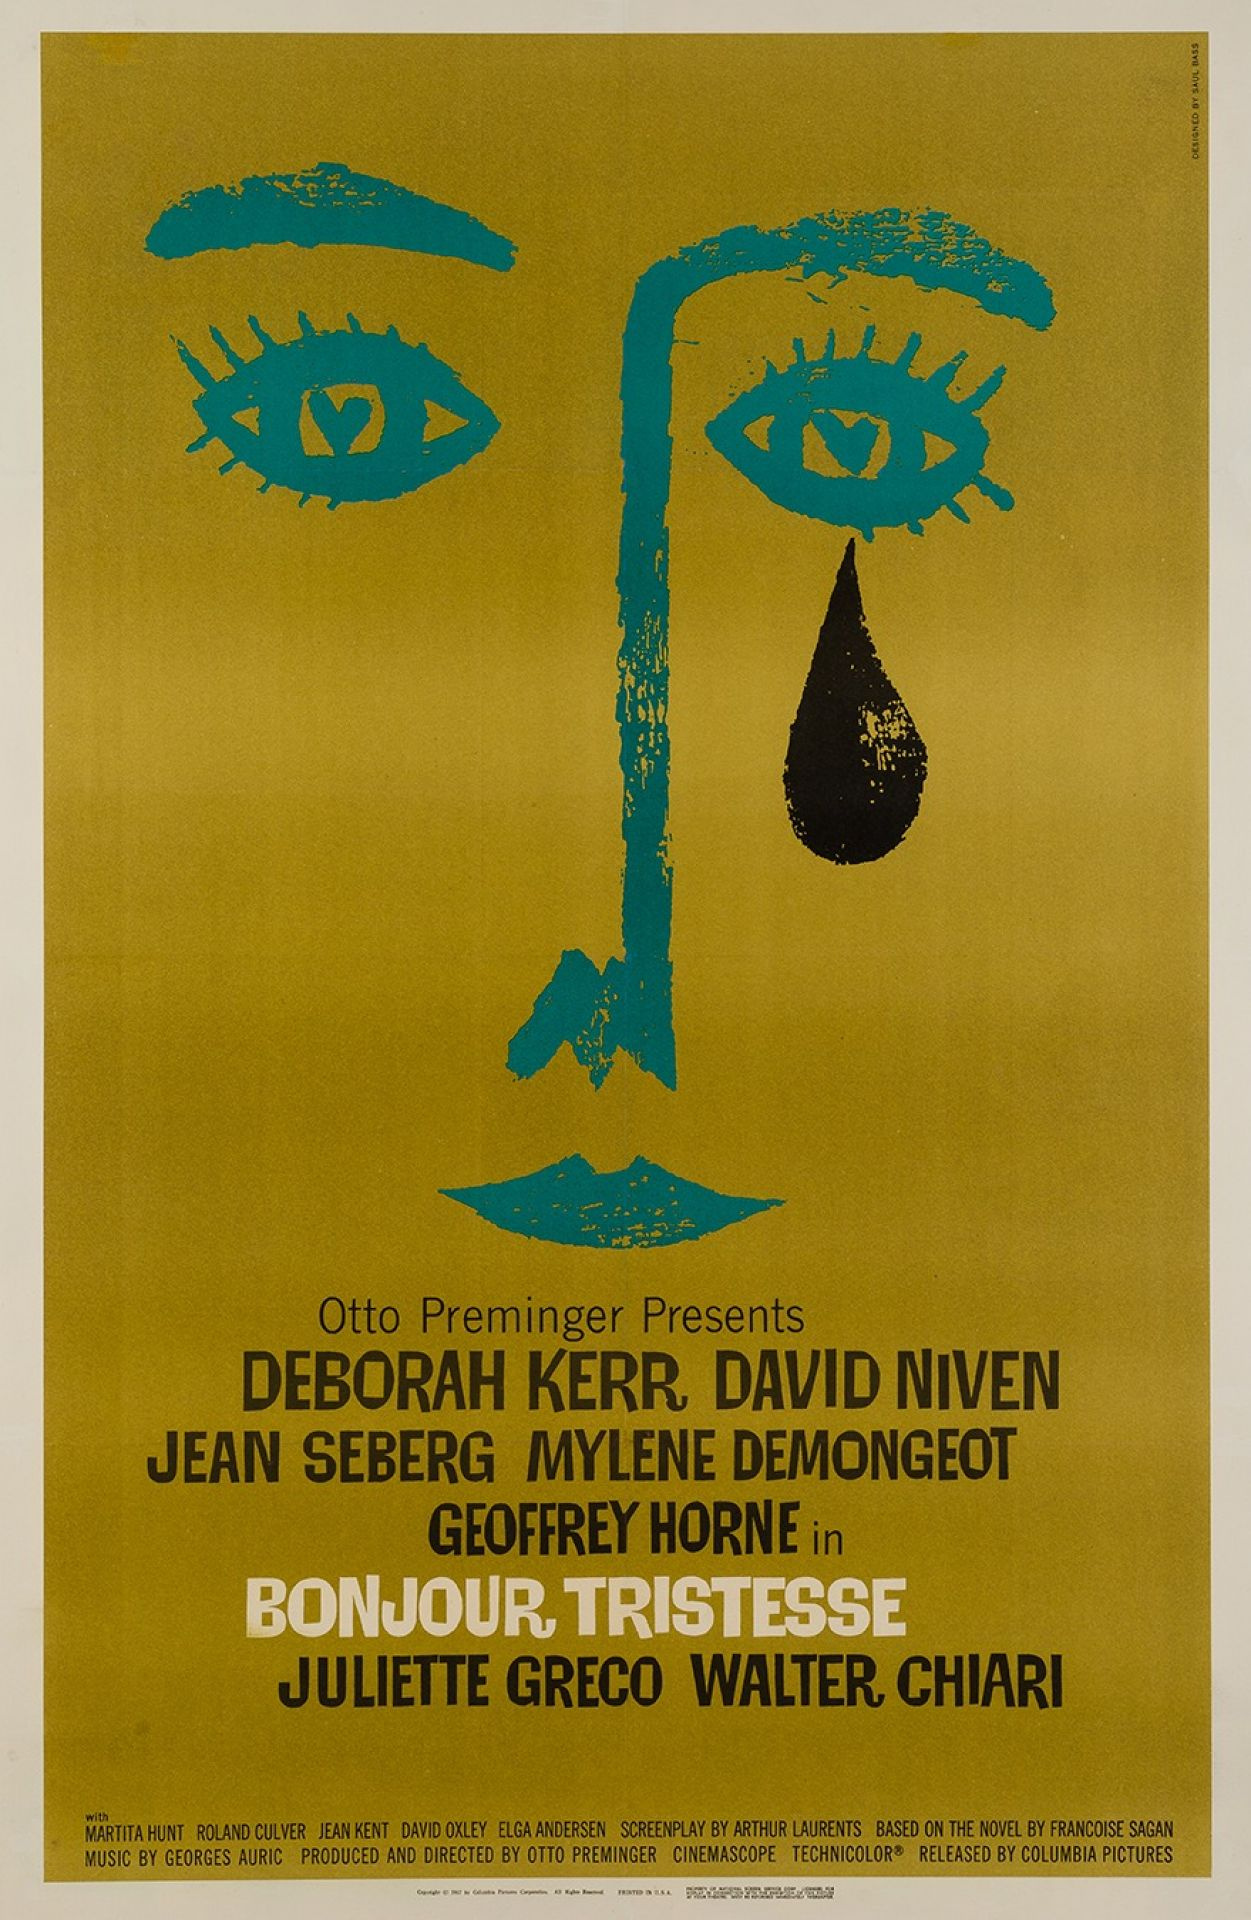 Original Bonjour Tristesse 1968 US Film Movie Poster, Saul Bass